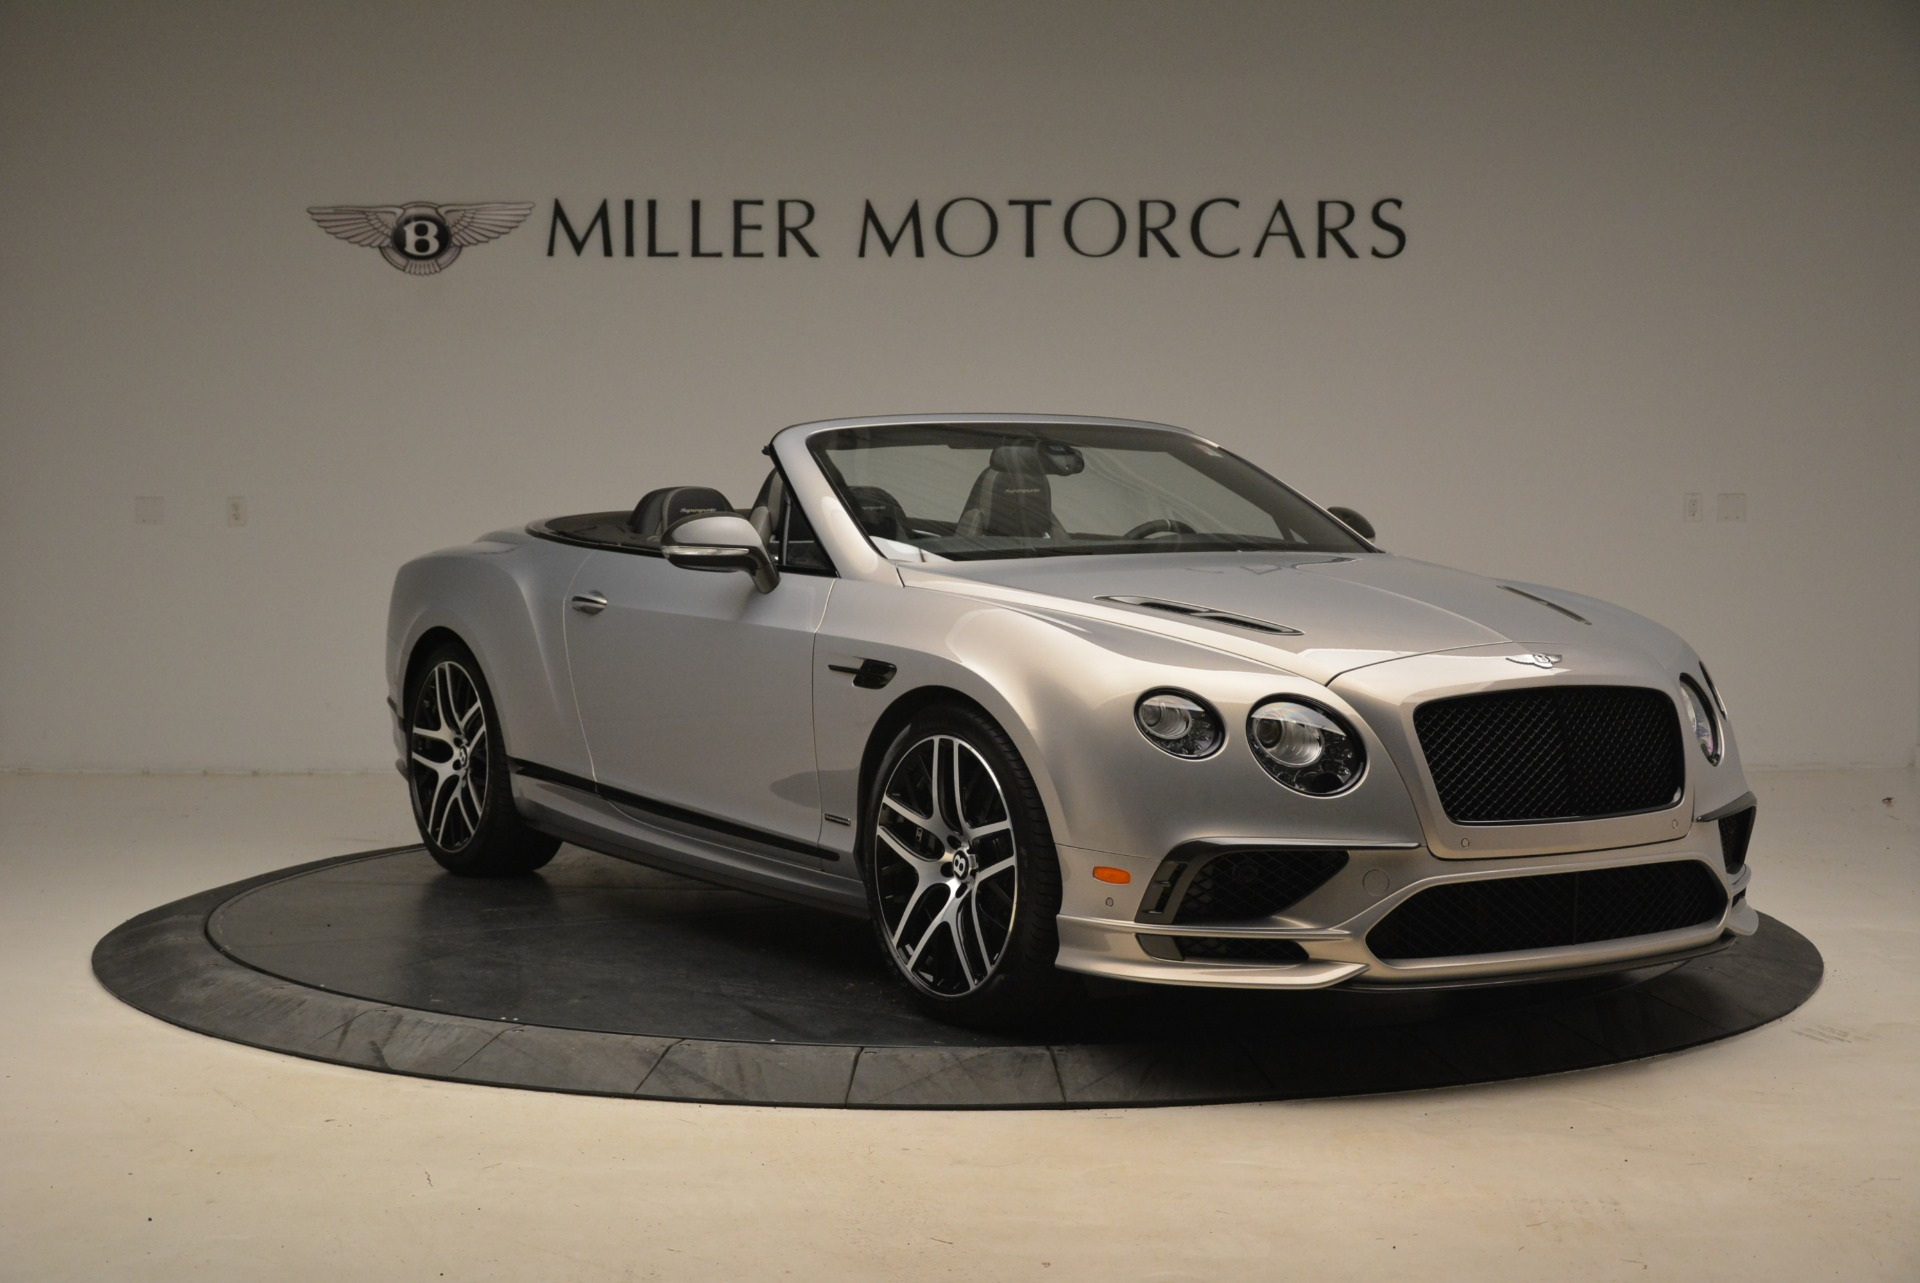 Used 2018 Bentley Continental GT Supersports Convertible For Sale In Westport, CT 2134_p11